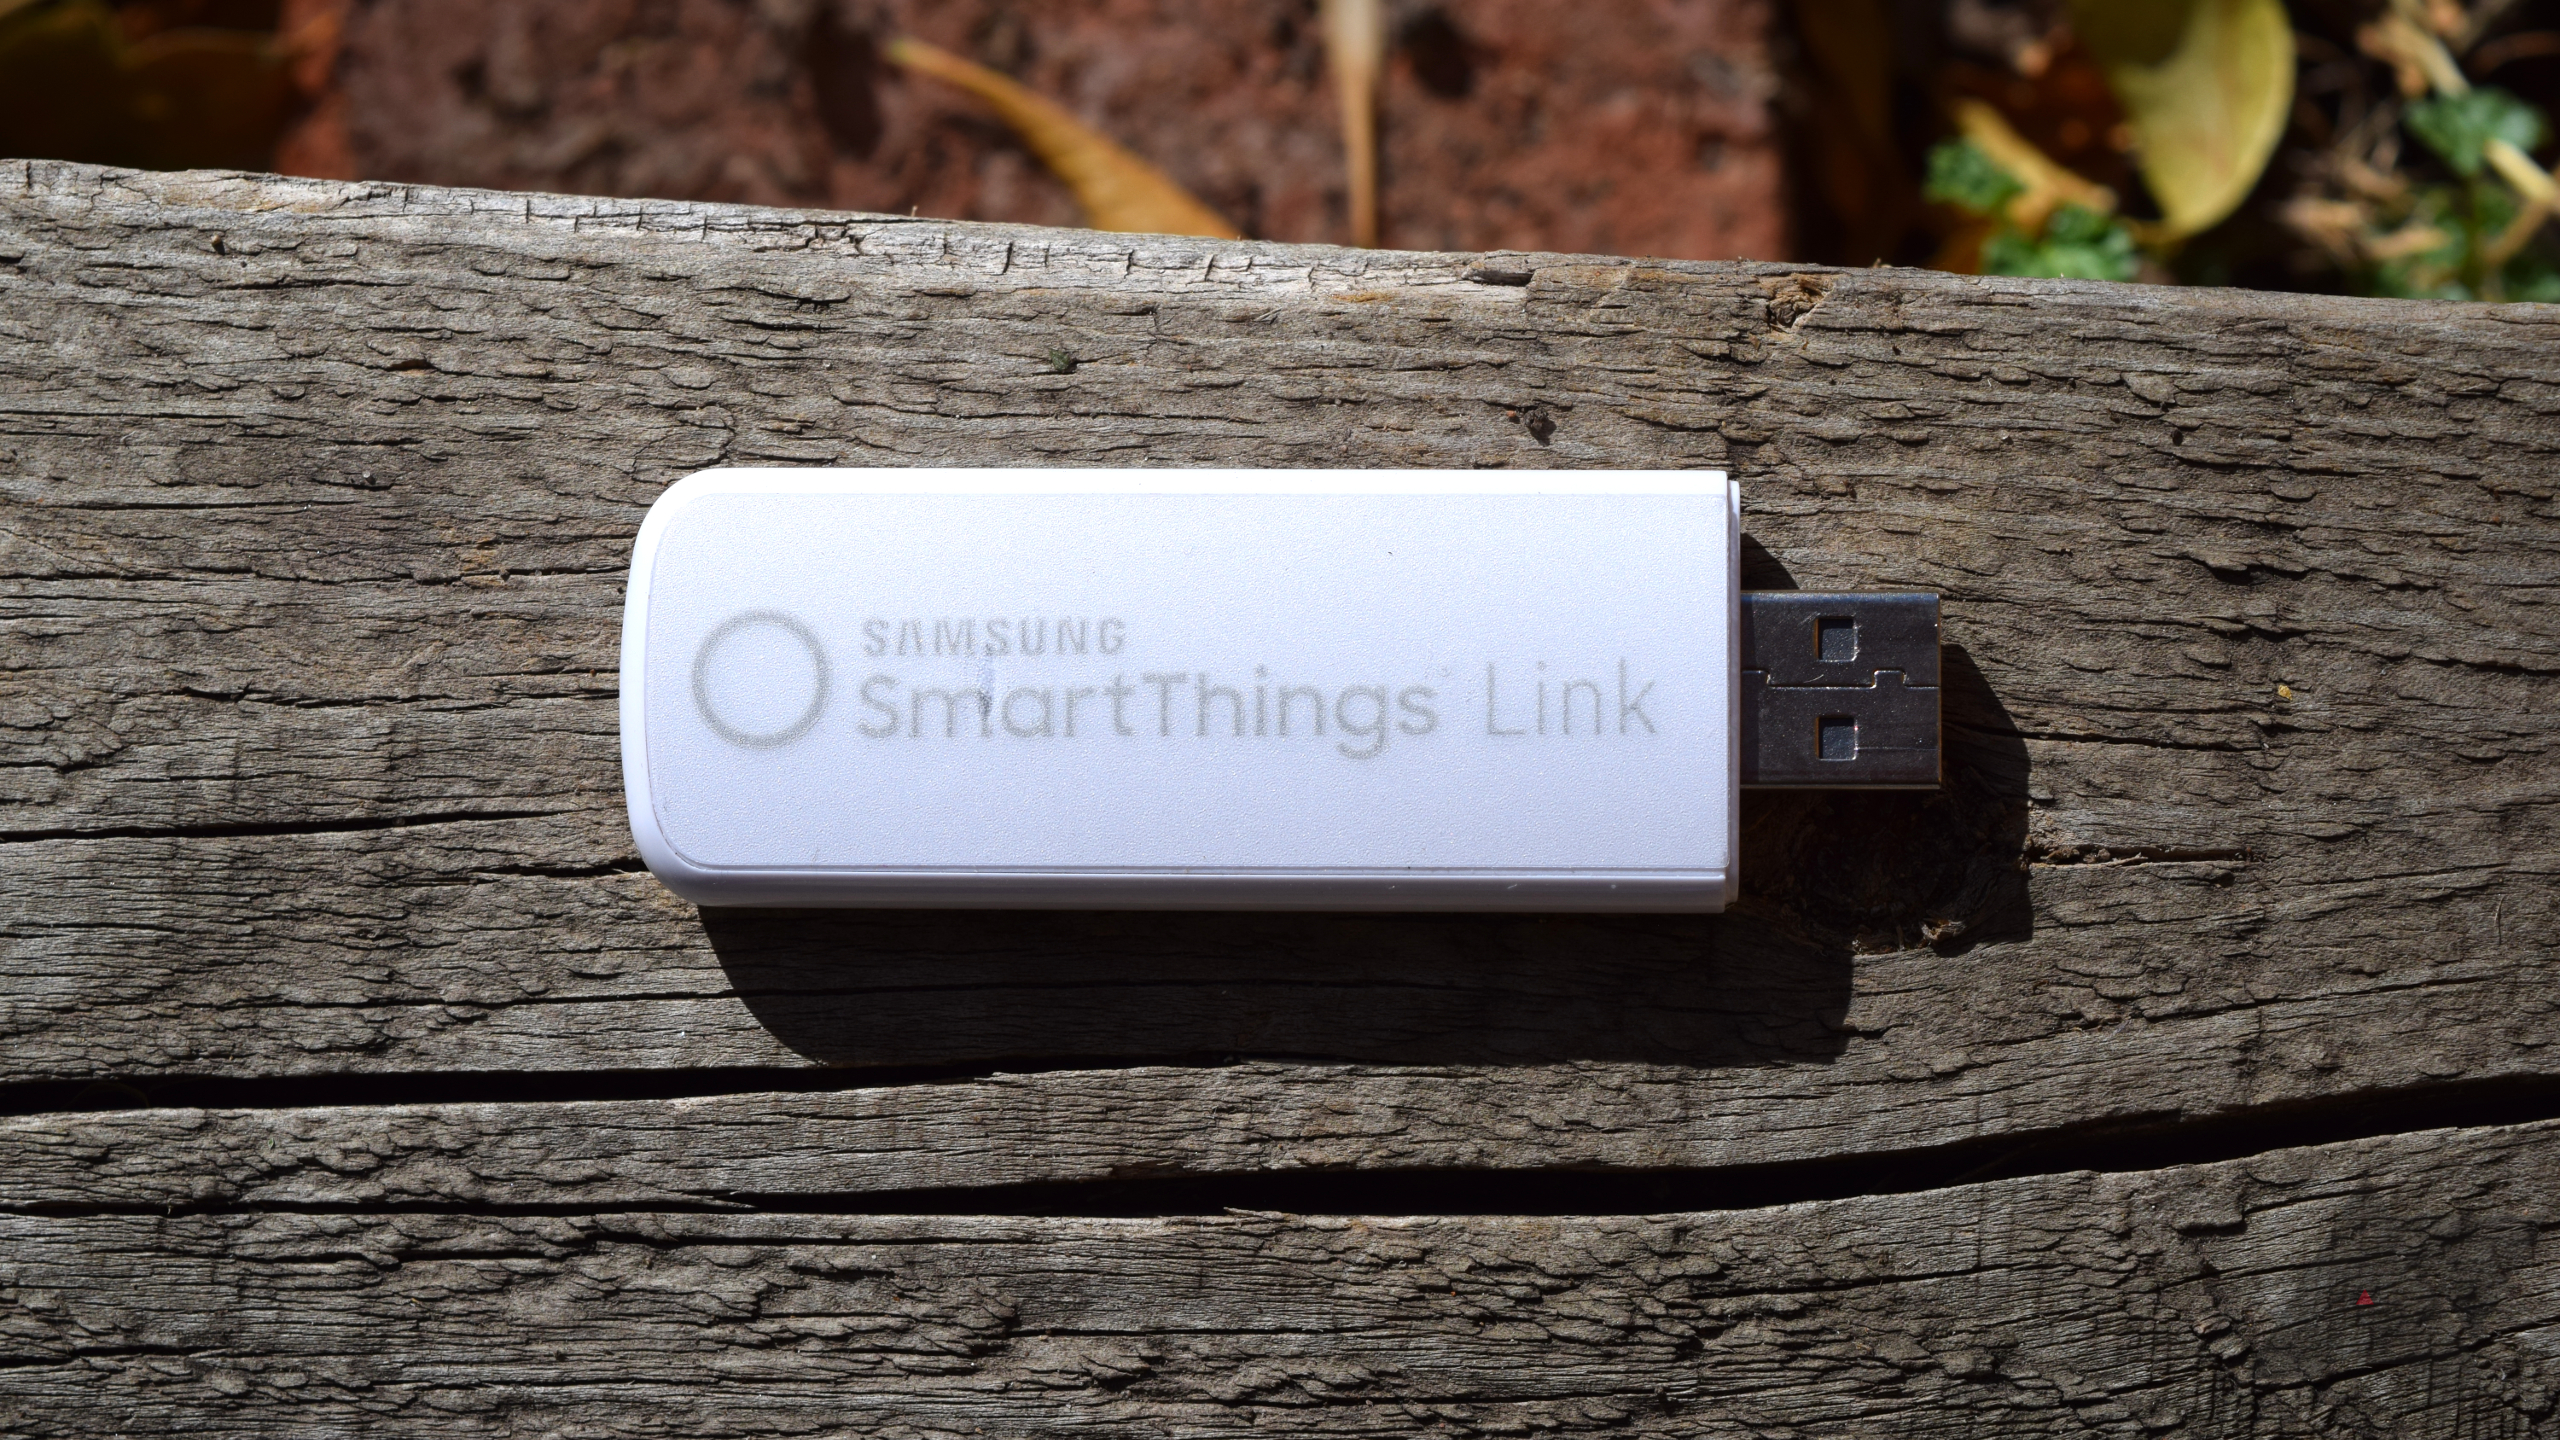 SmartThings Link hands-on: Turning your SHIELD TV into a